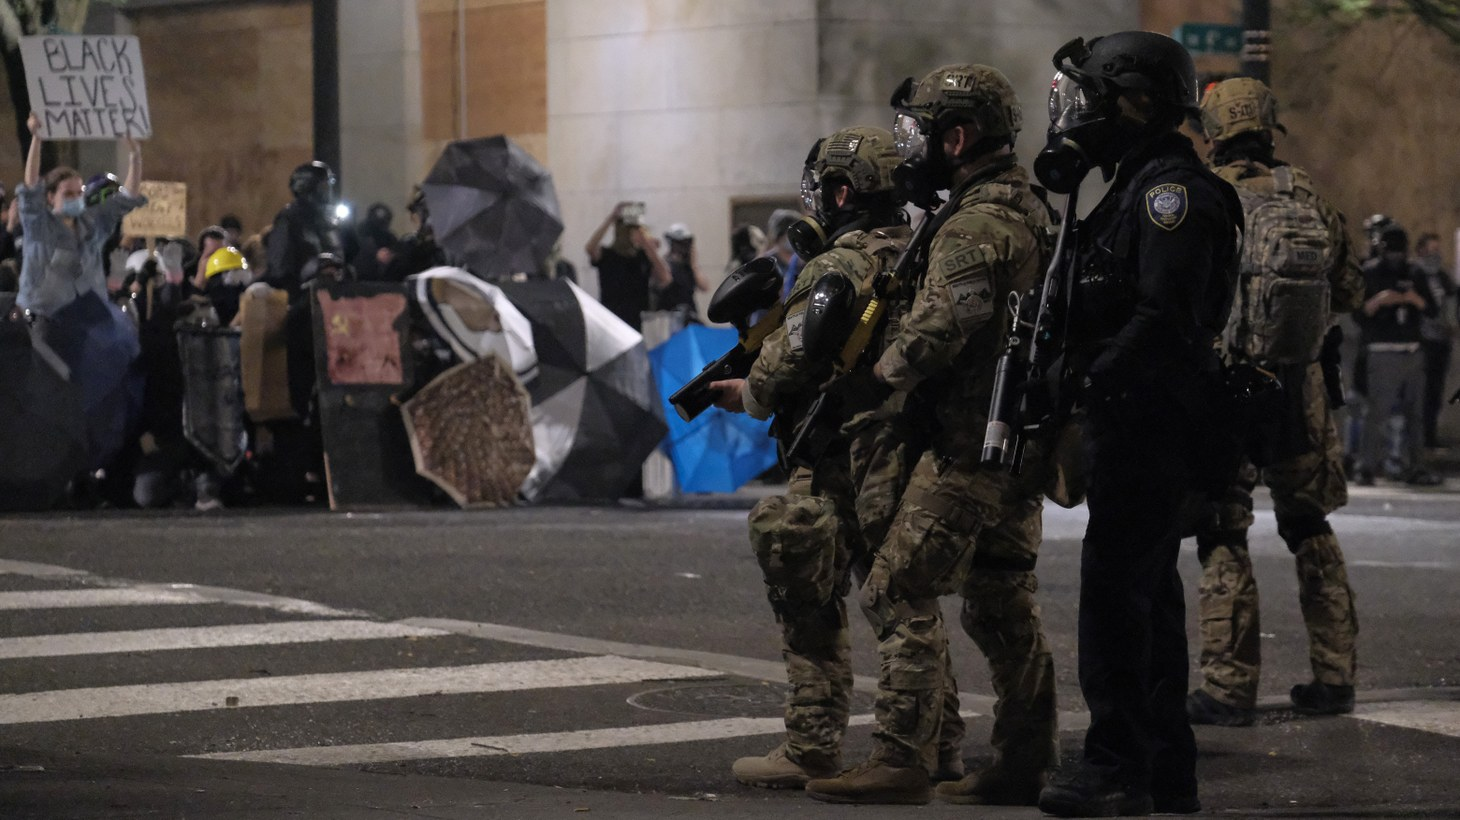 Protesters removed fencing around the front entrance of the federal courthouse in Portland, Ore., and faced off with officers who launched tear gas and other crowd control weapons. July 20, 2020.